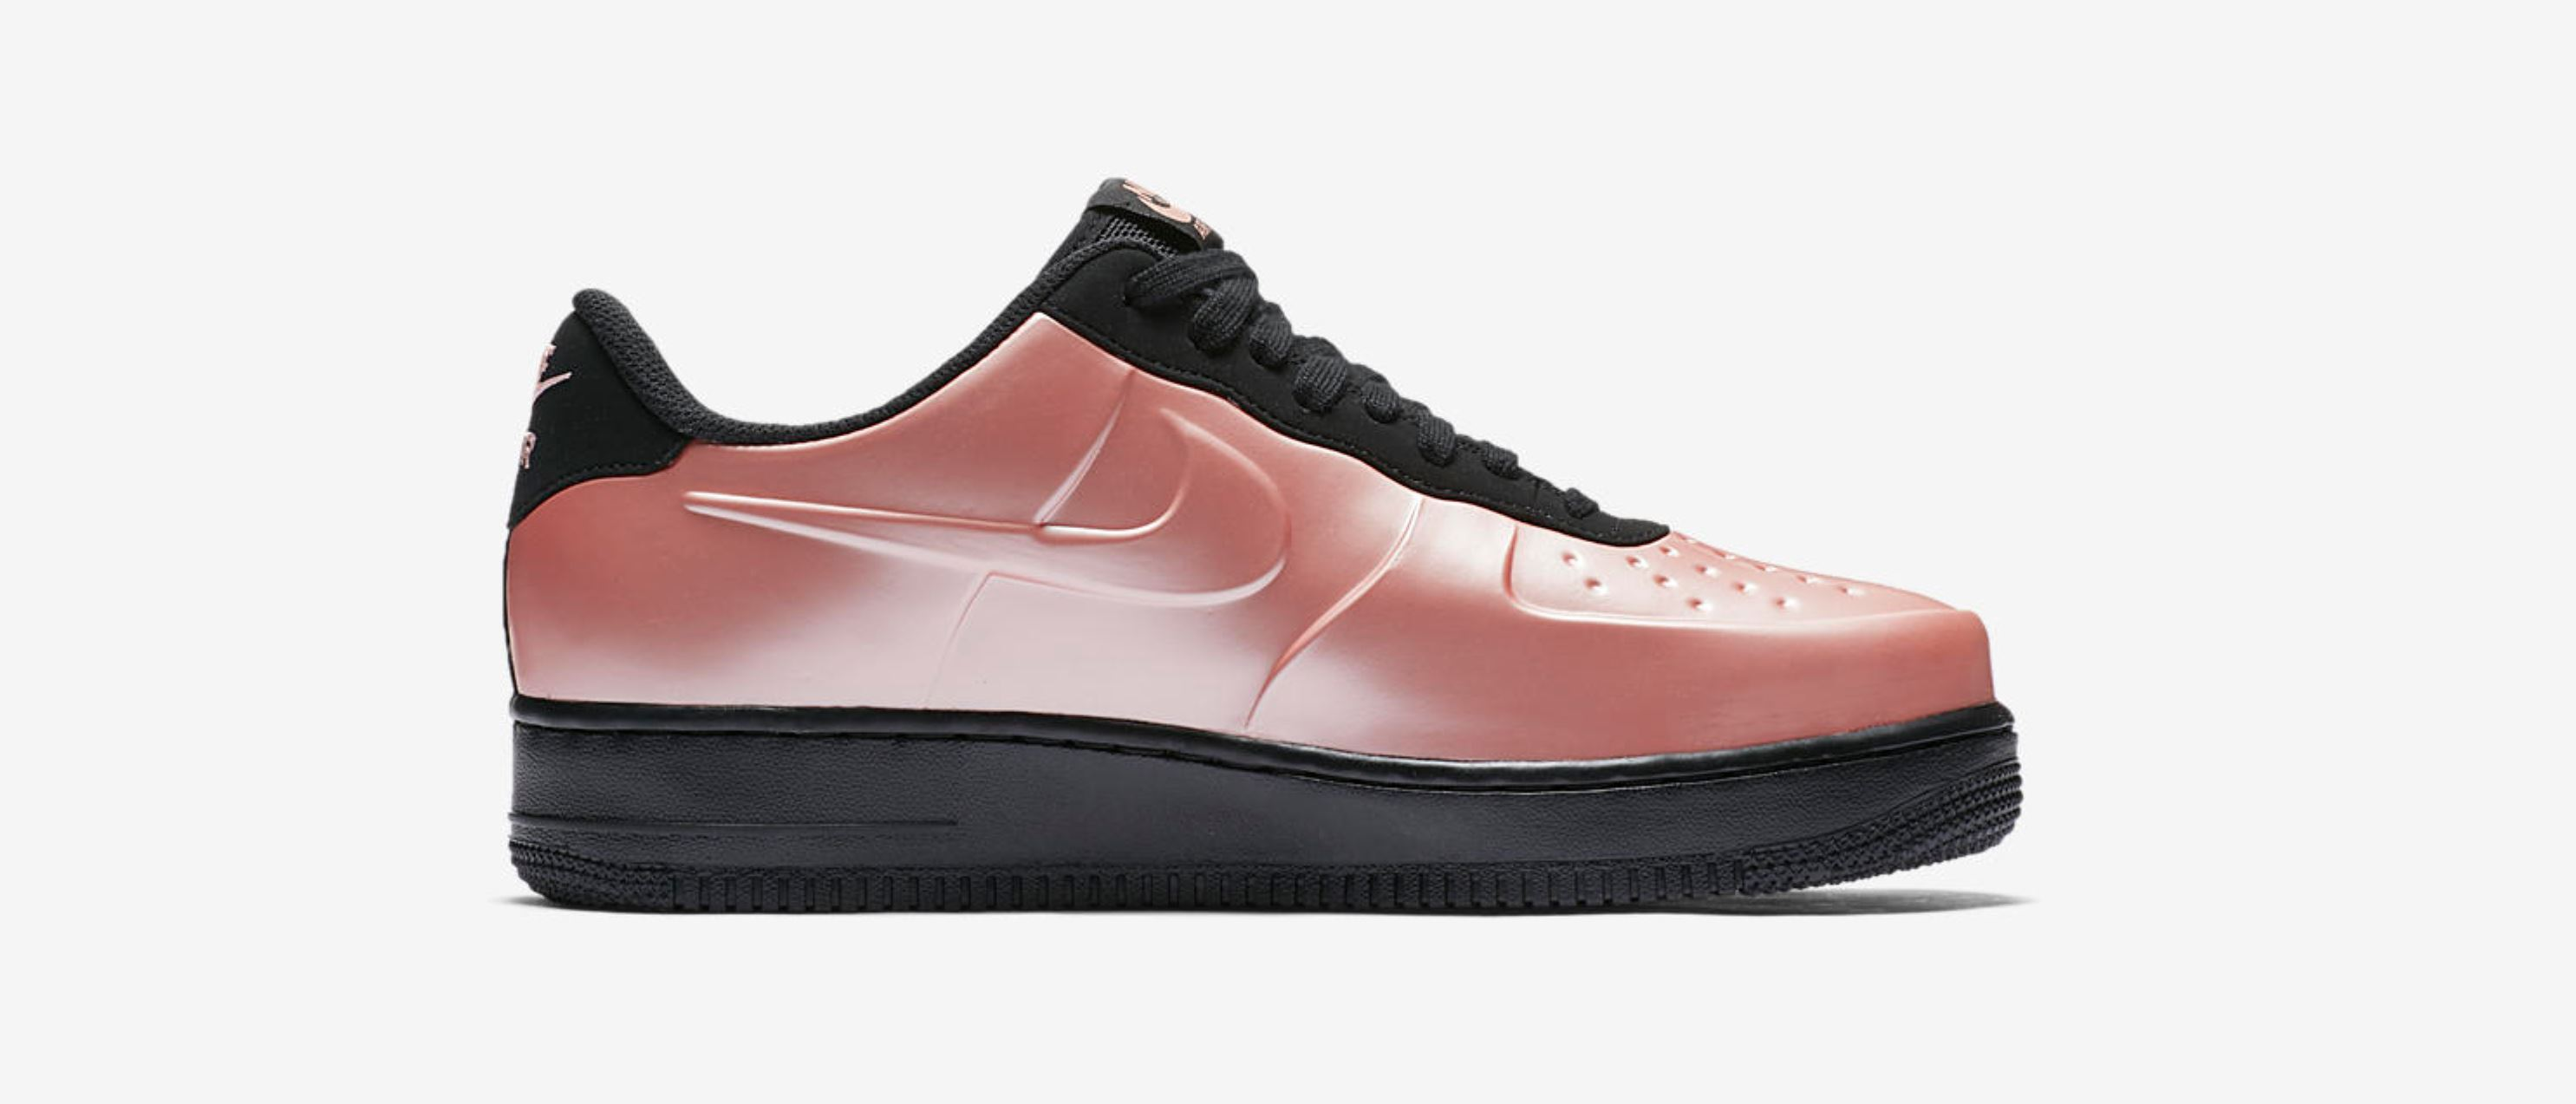 43c8e121a3759 nike air force 1 foamposite pro cup coral stardust 2 - WearTesters